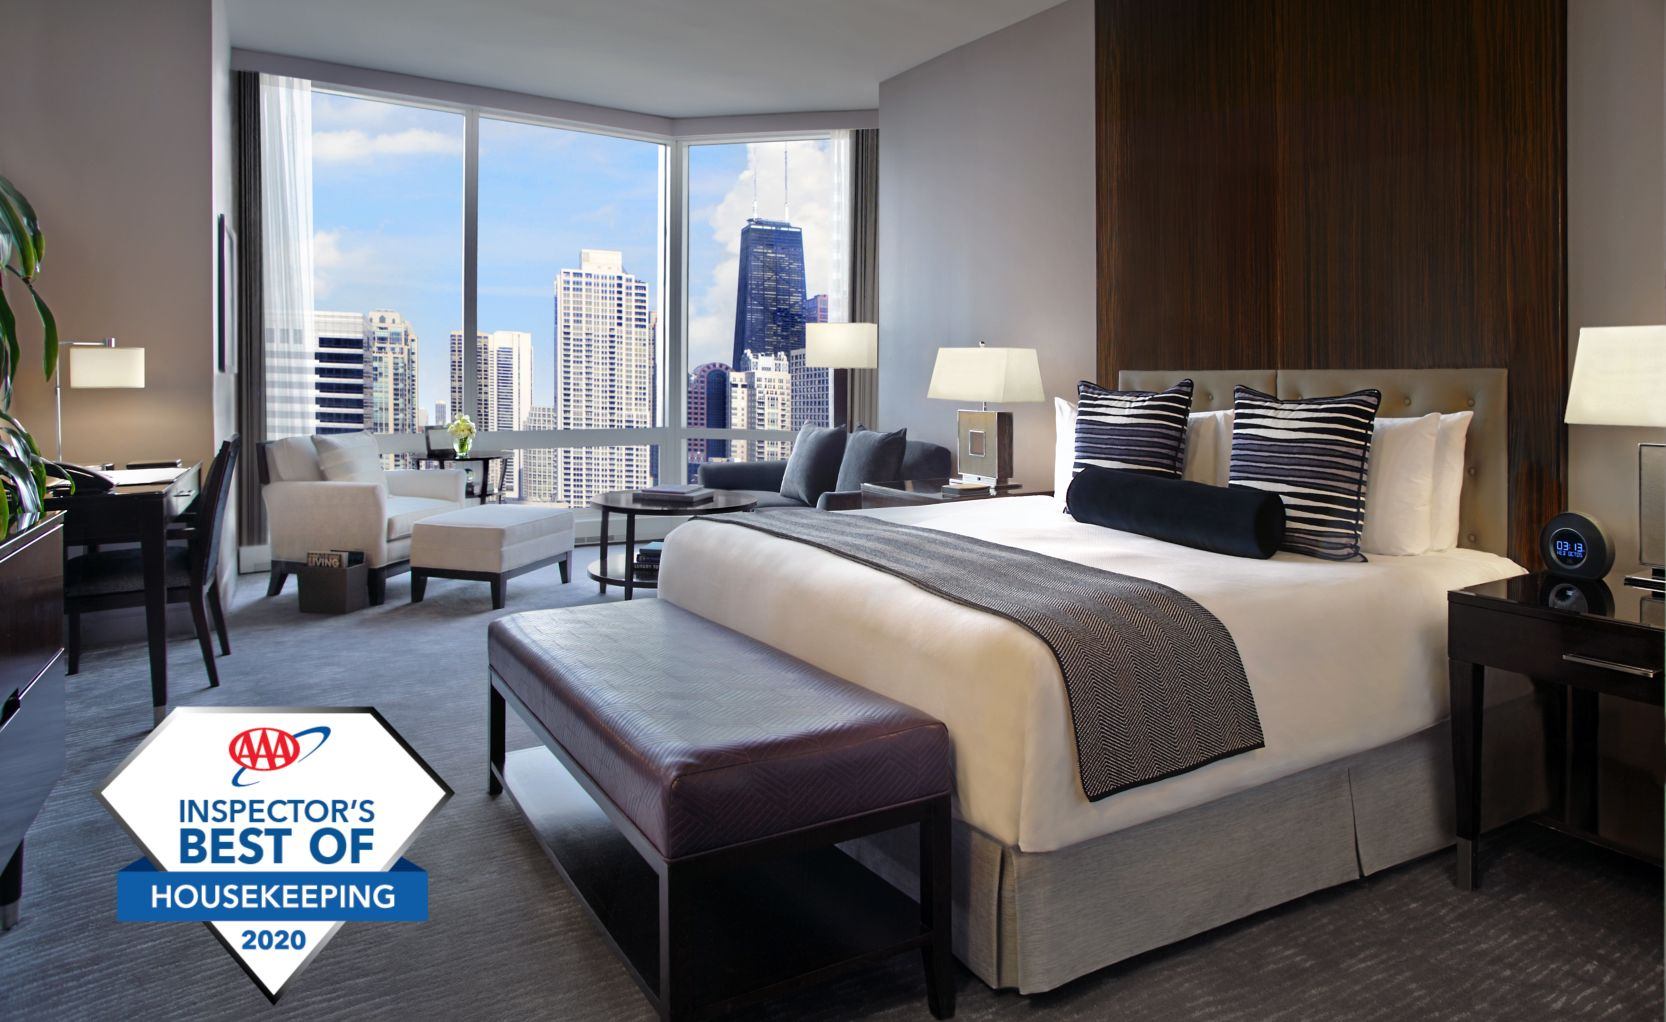 Chicago Suite Overlooking the City with AAA Award